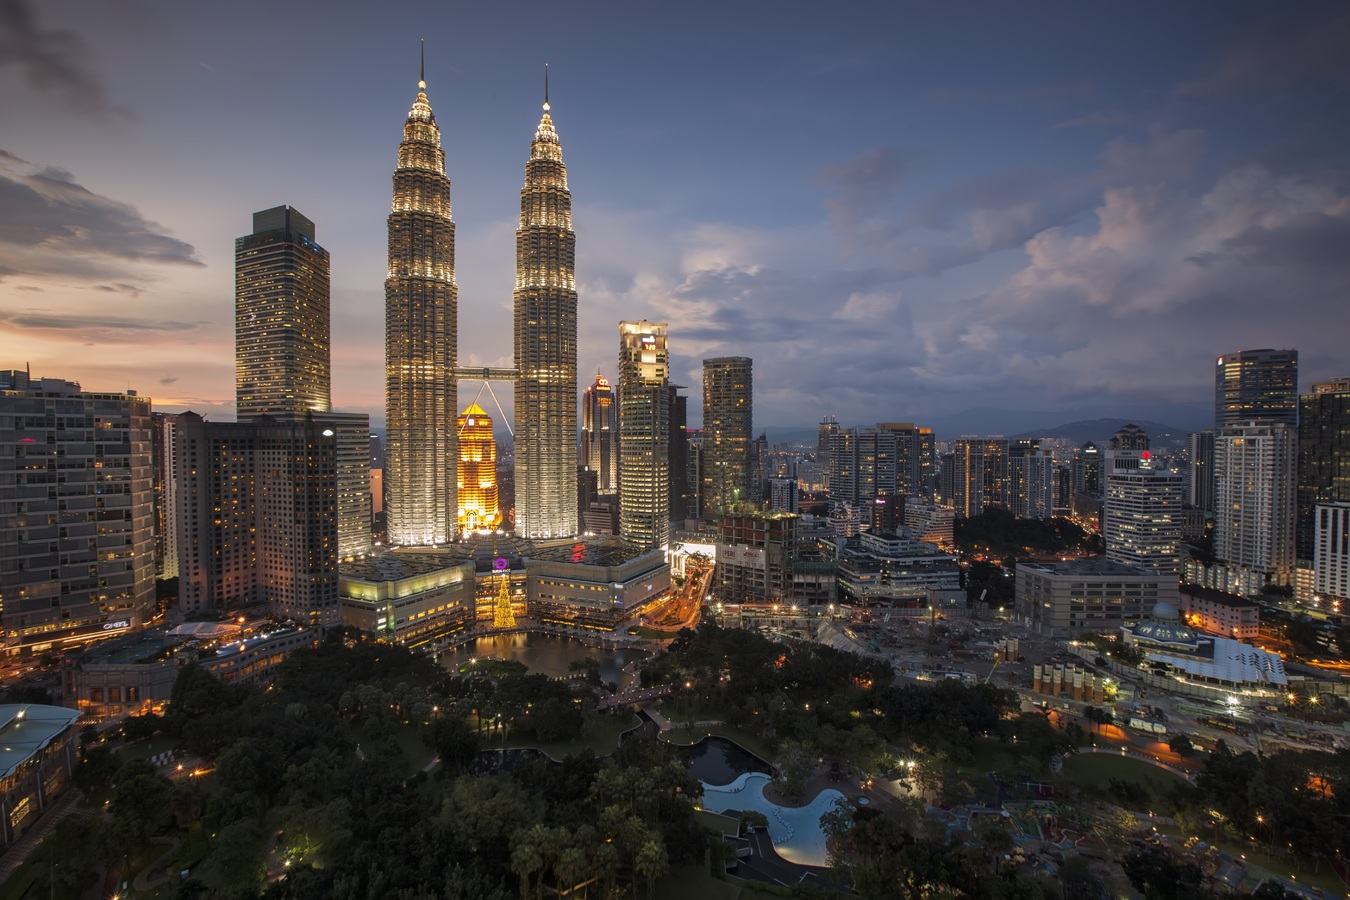 Singapore Malaysia Thailand Tour Package 5 Days Luge Ampamp Skyline 2x